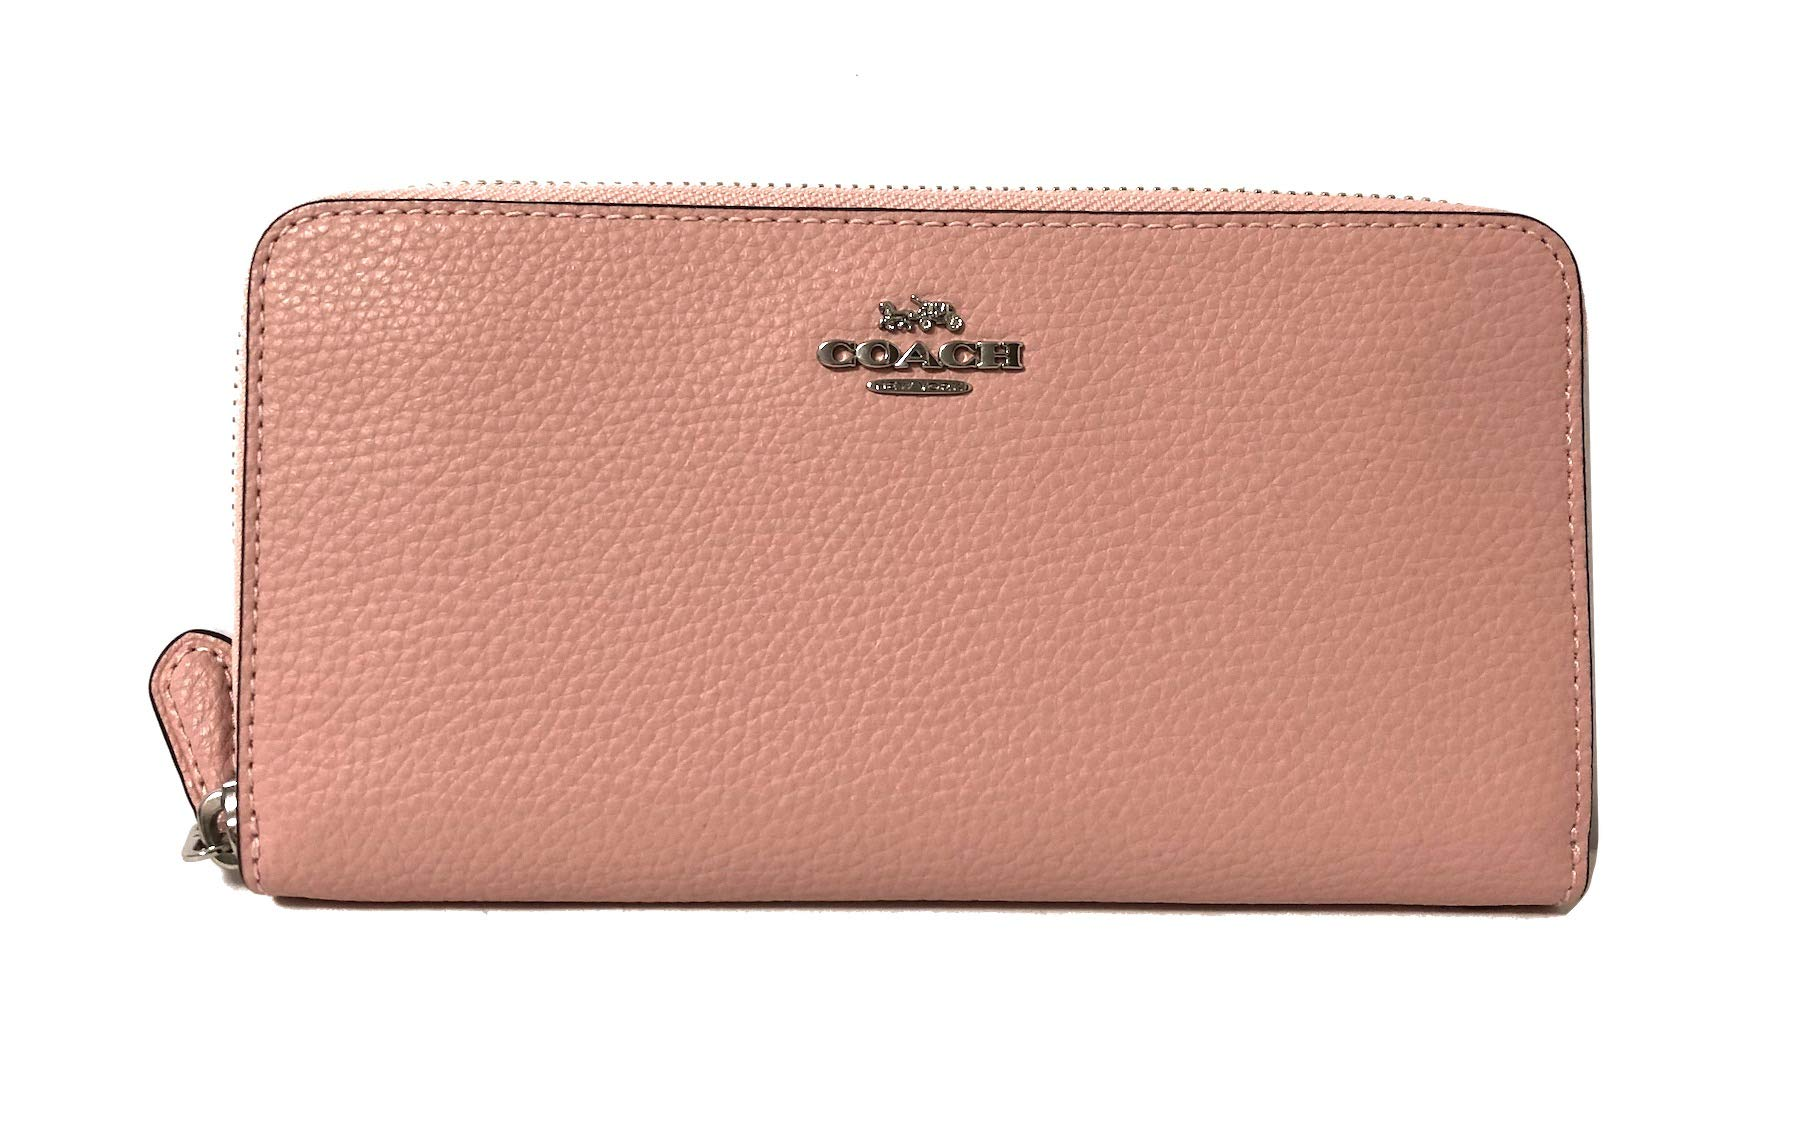 Coach Pebble Leather Accordion Zip Around Wallet (SV/Petal), Large